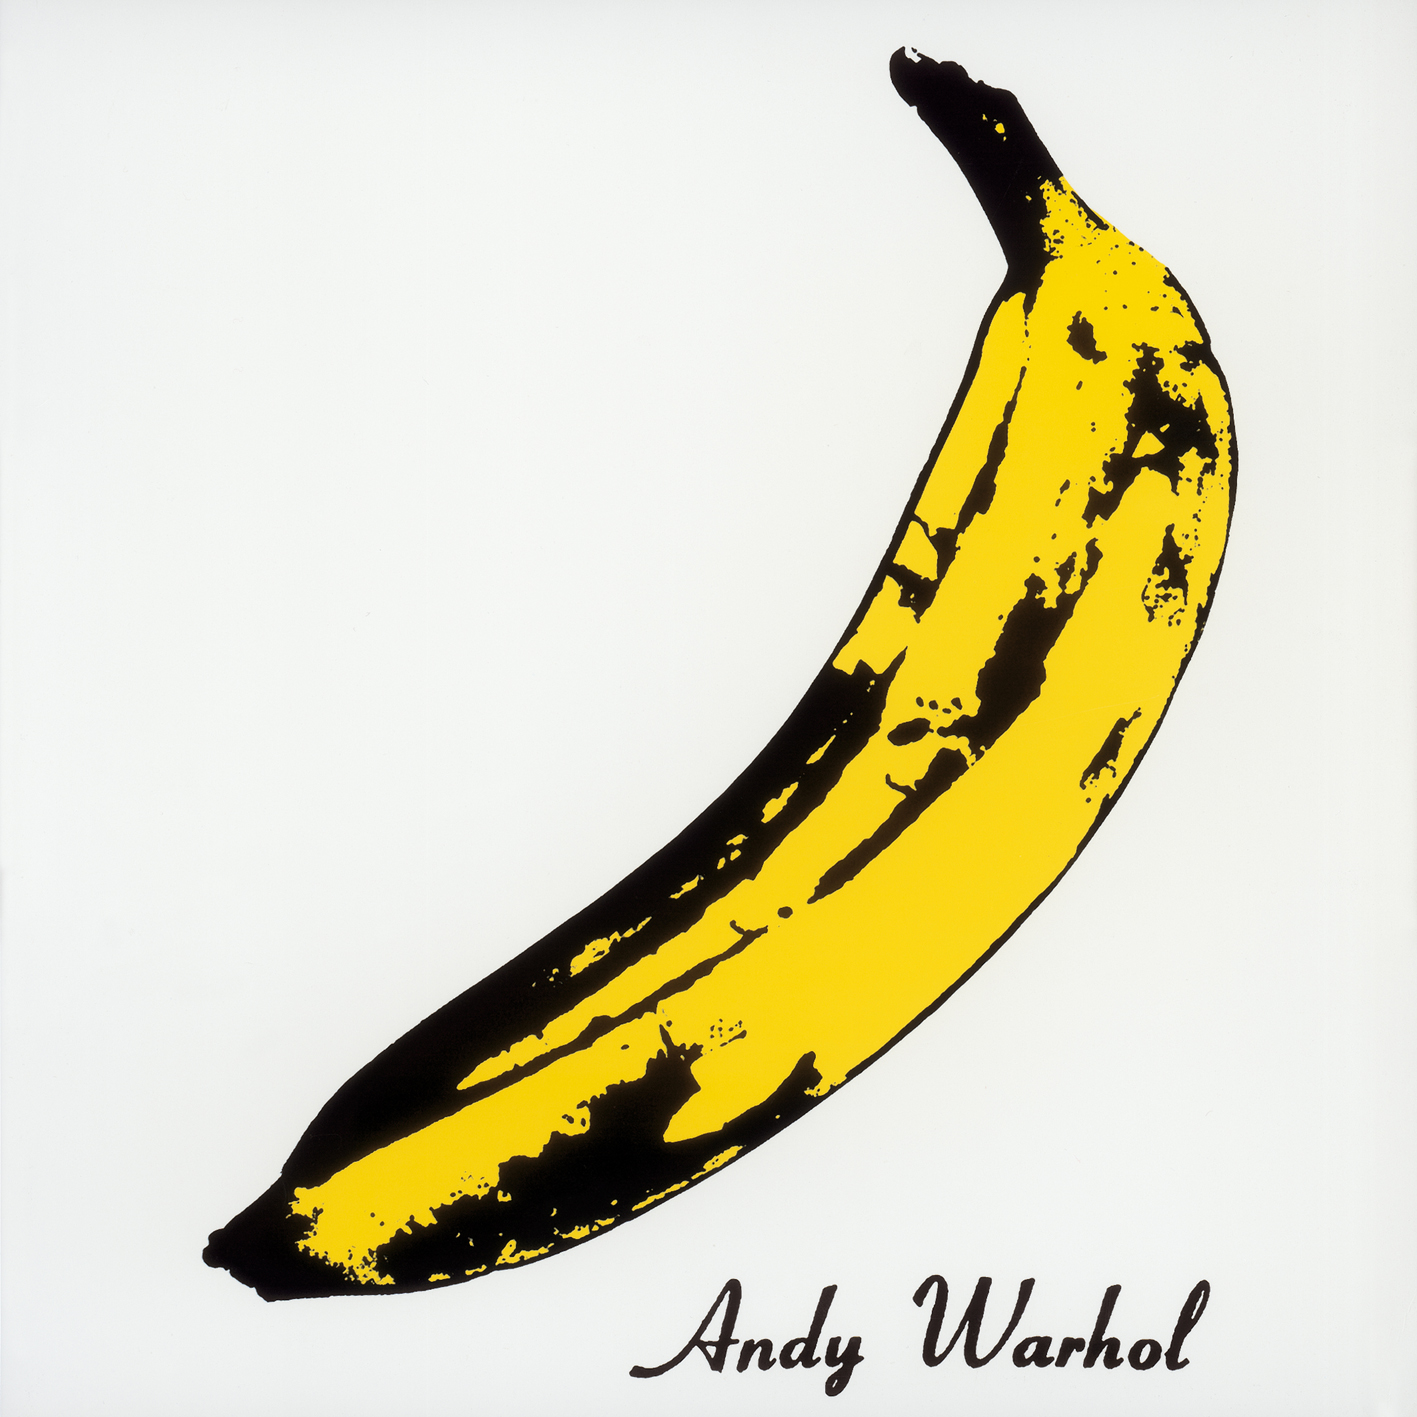 10 Album Covers Designed by Andy Warhol | Complex